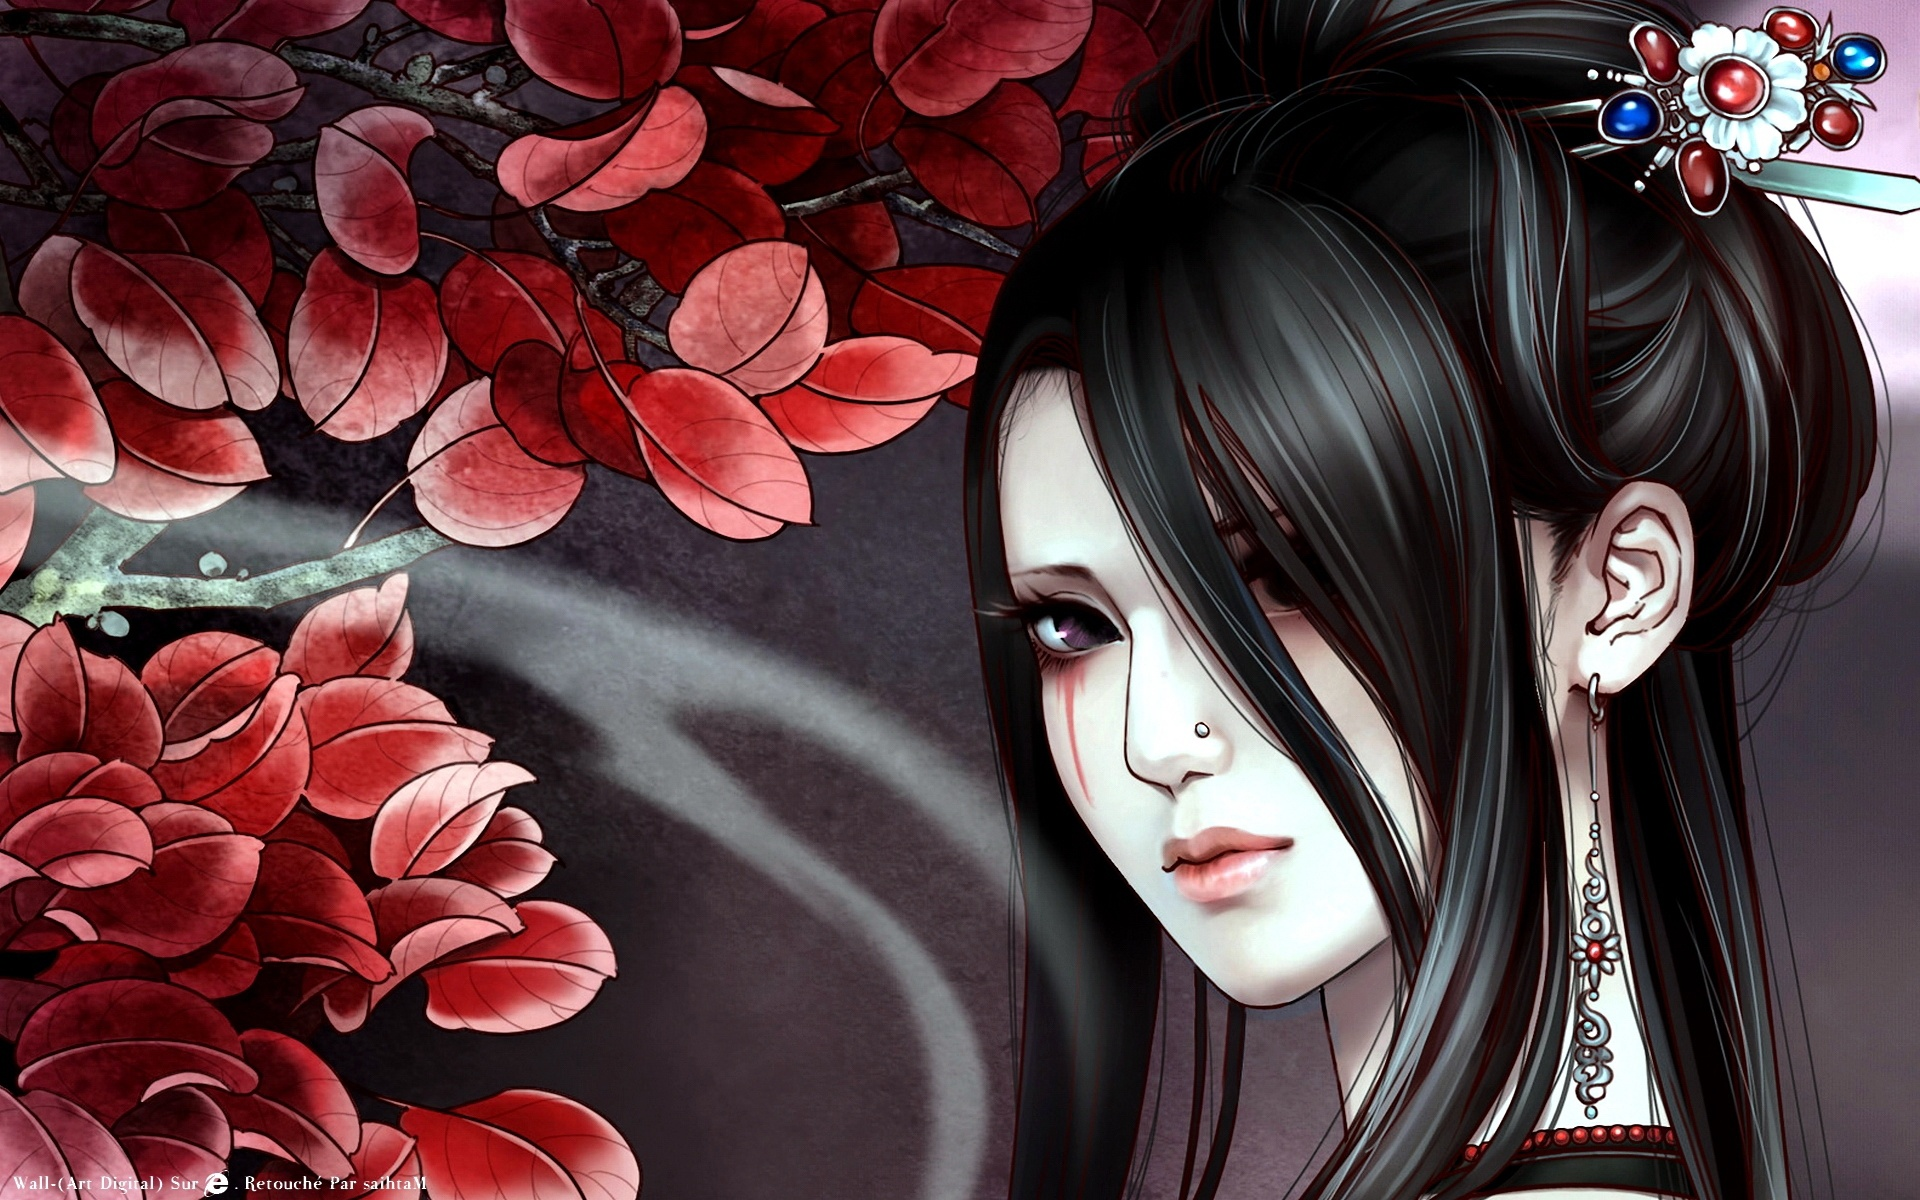 Anime Geisha anime asian brunette close up face geisha girl 1920x1200